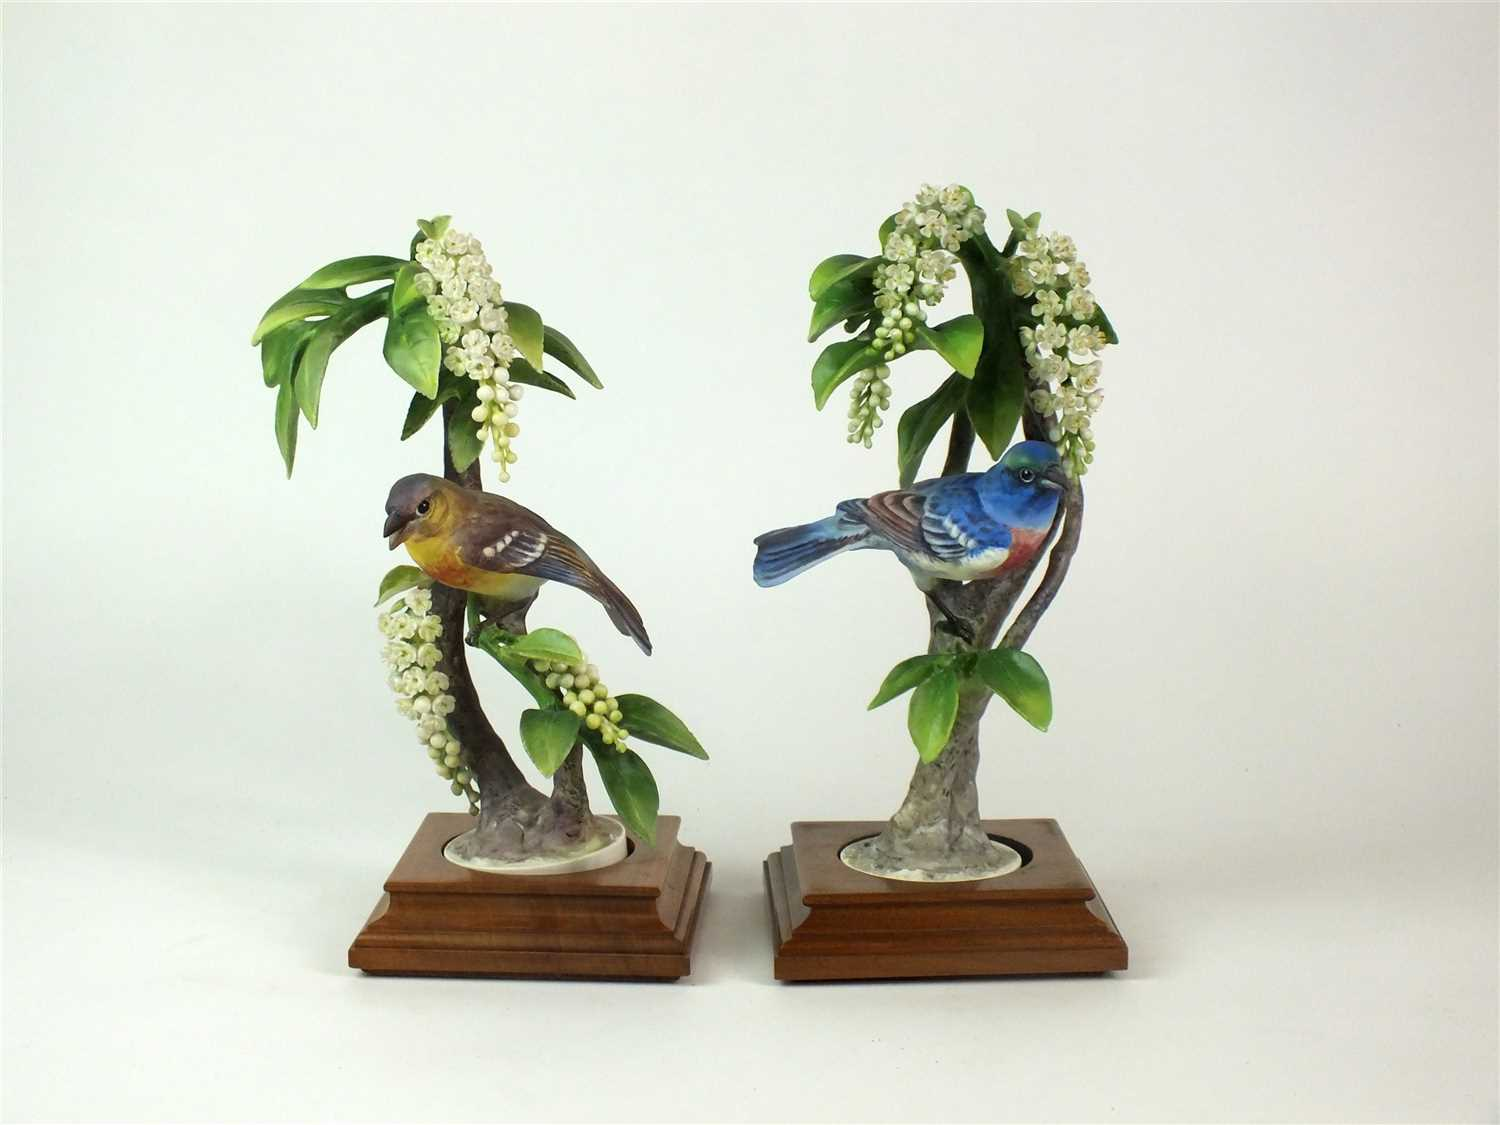 Lot 88-A pair of Royal Worcester models of Lazuli Bunting on Choke Cherry